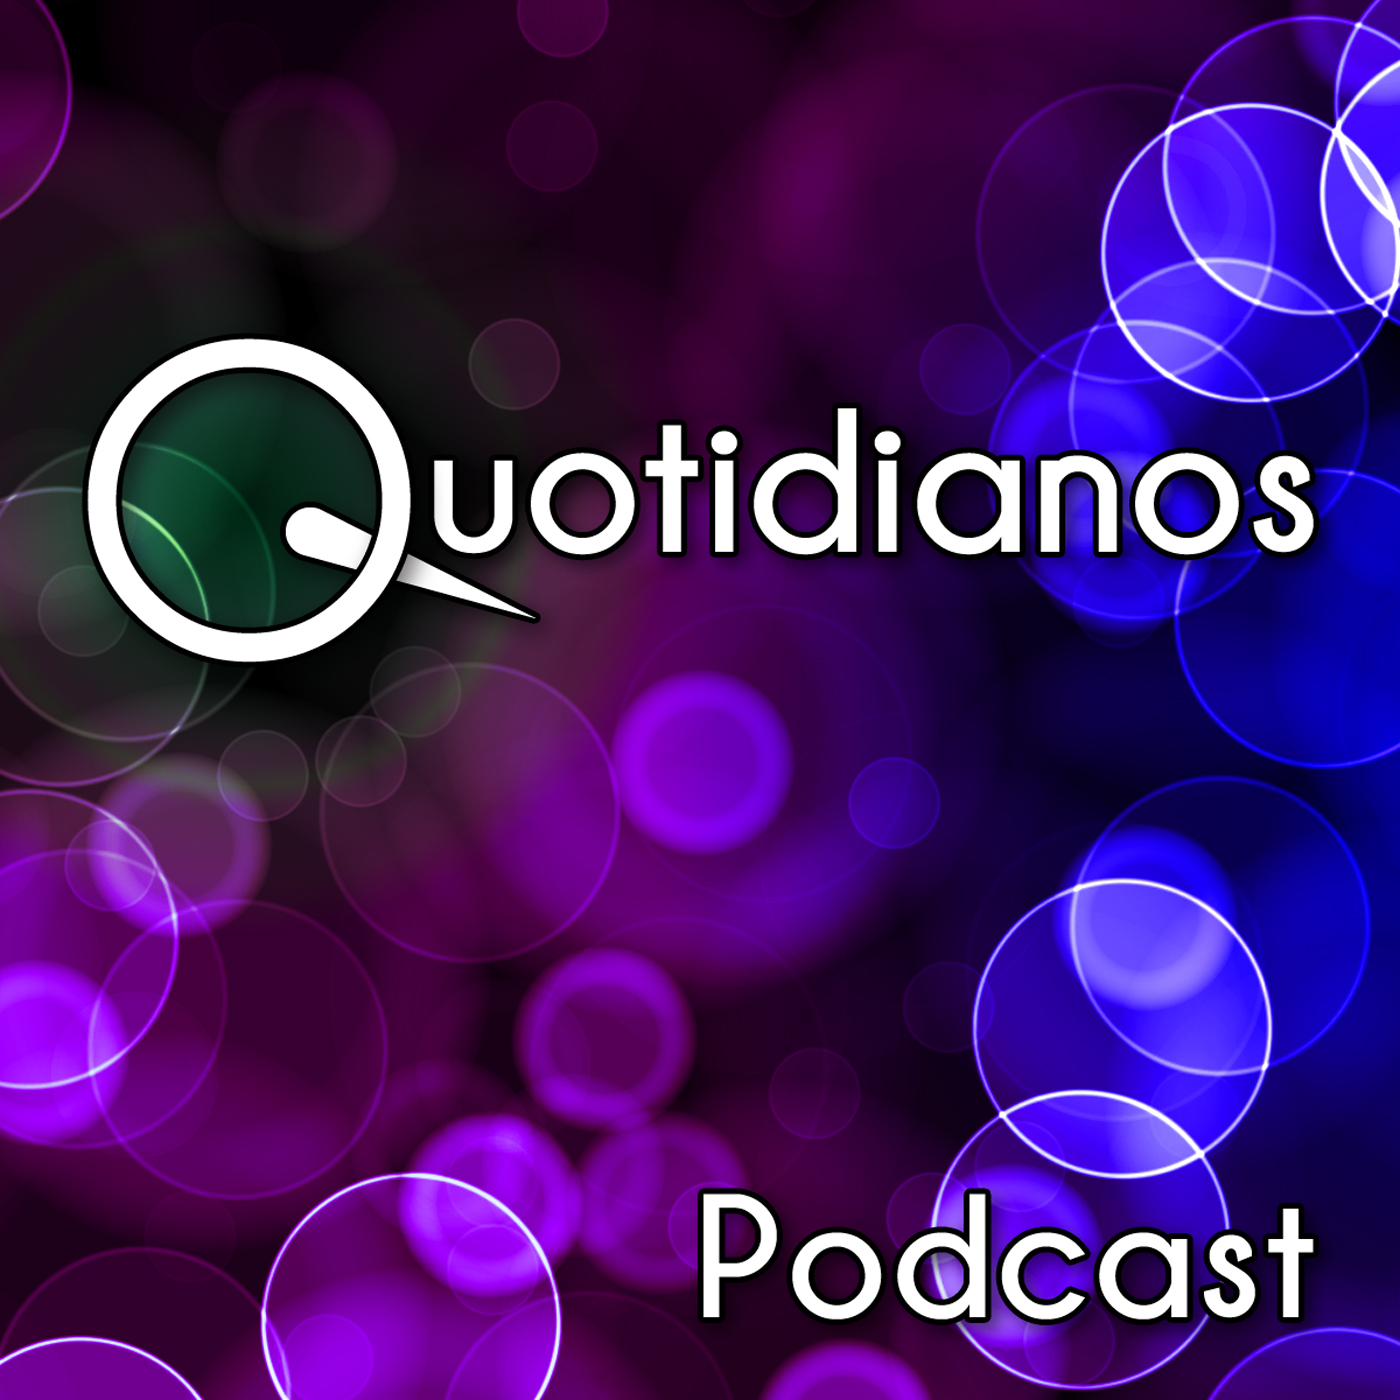 Quotidianos Podcast